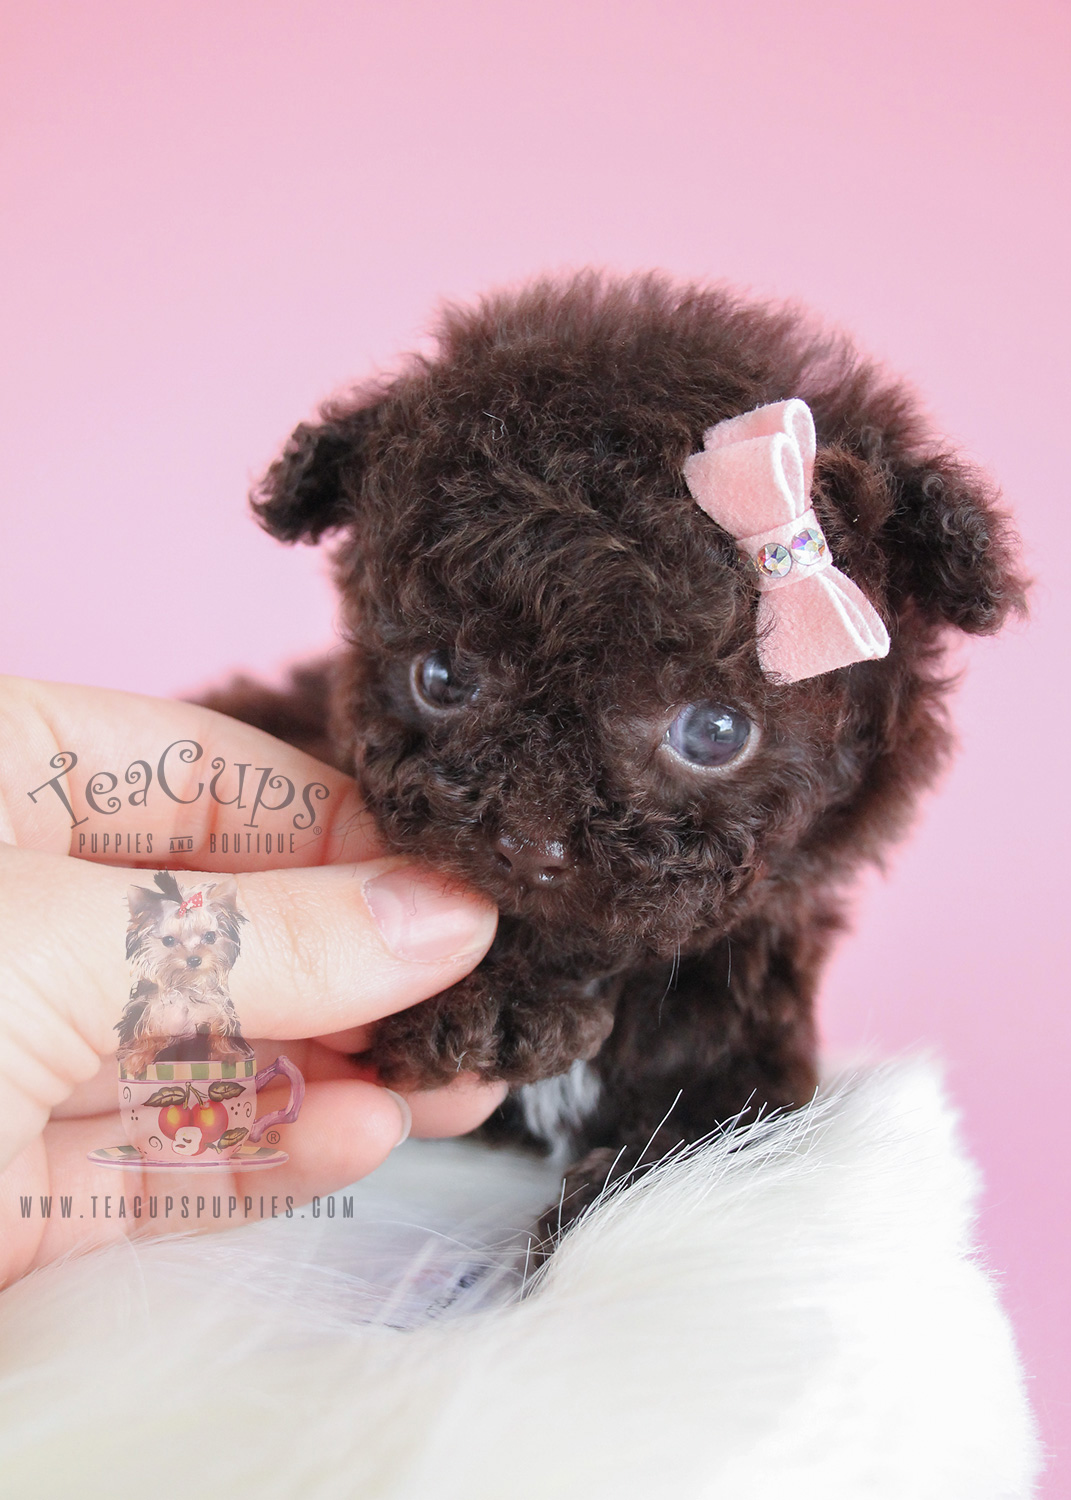 Female Chocolate Poodle Puppy For Sale